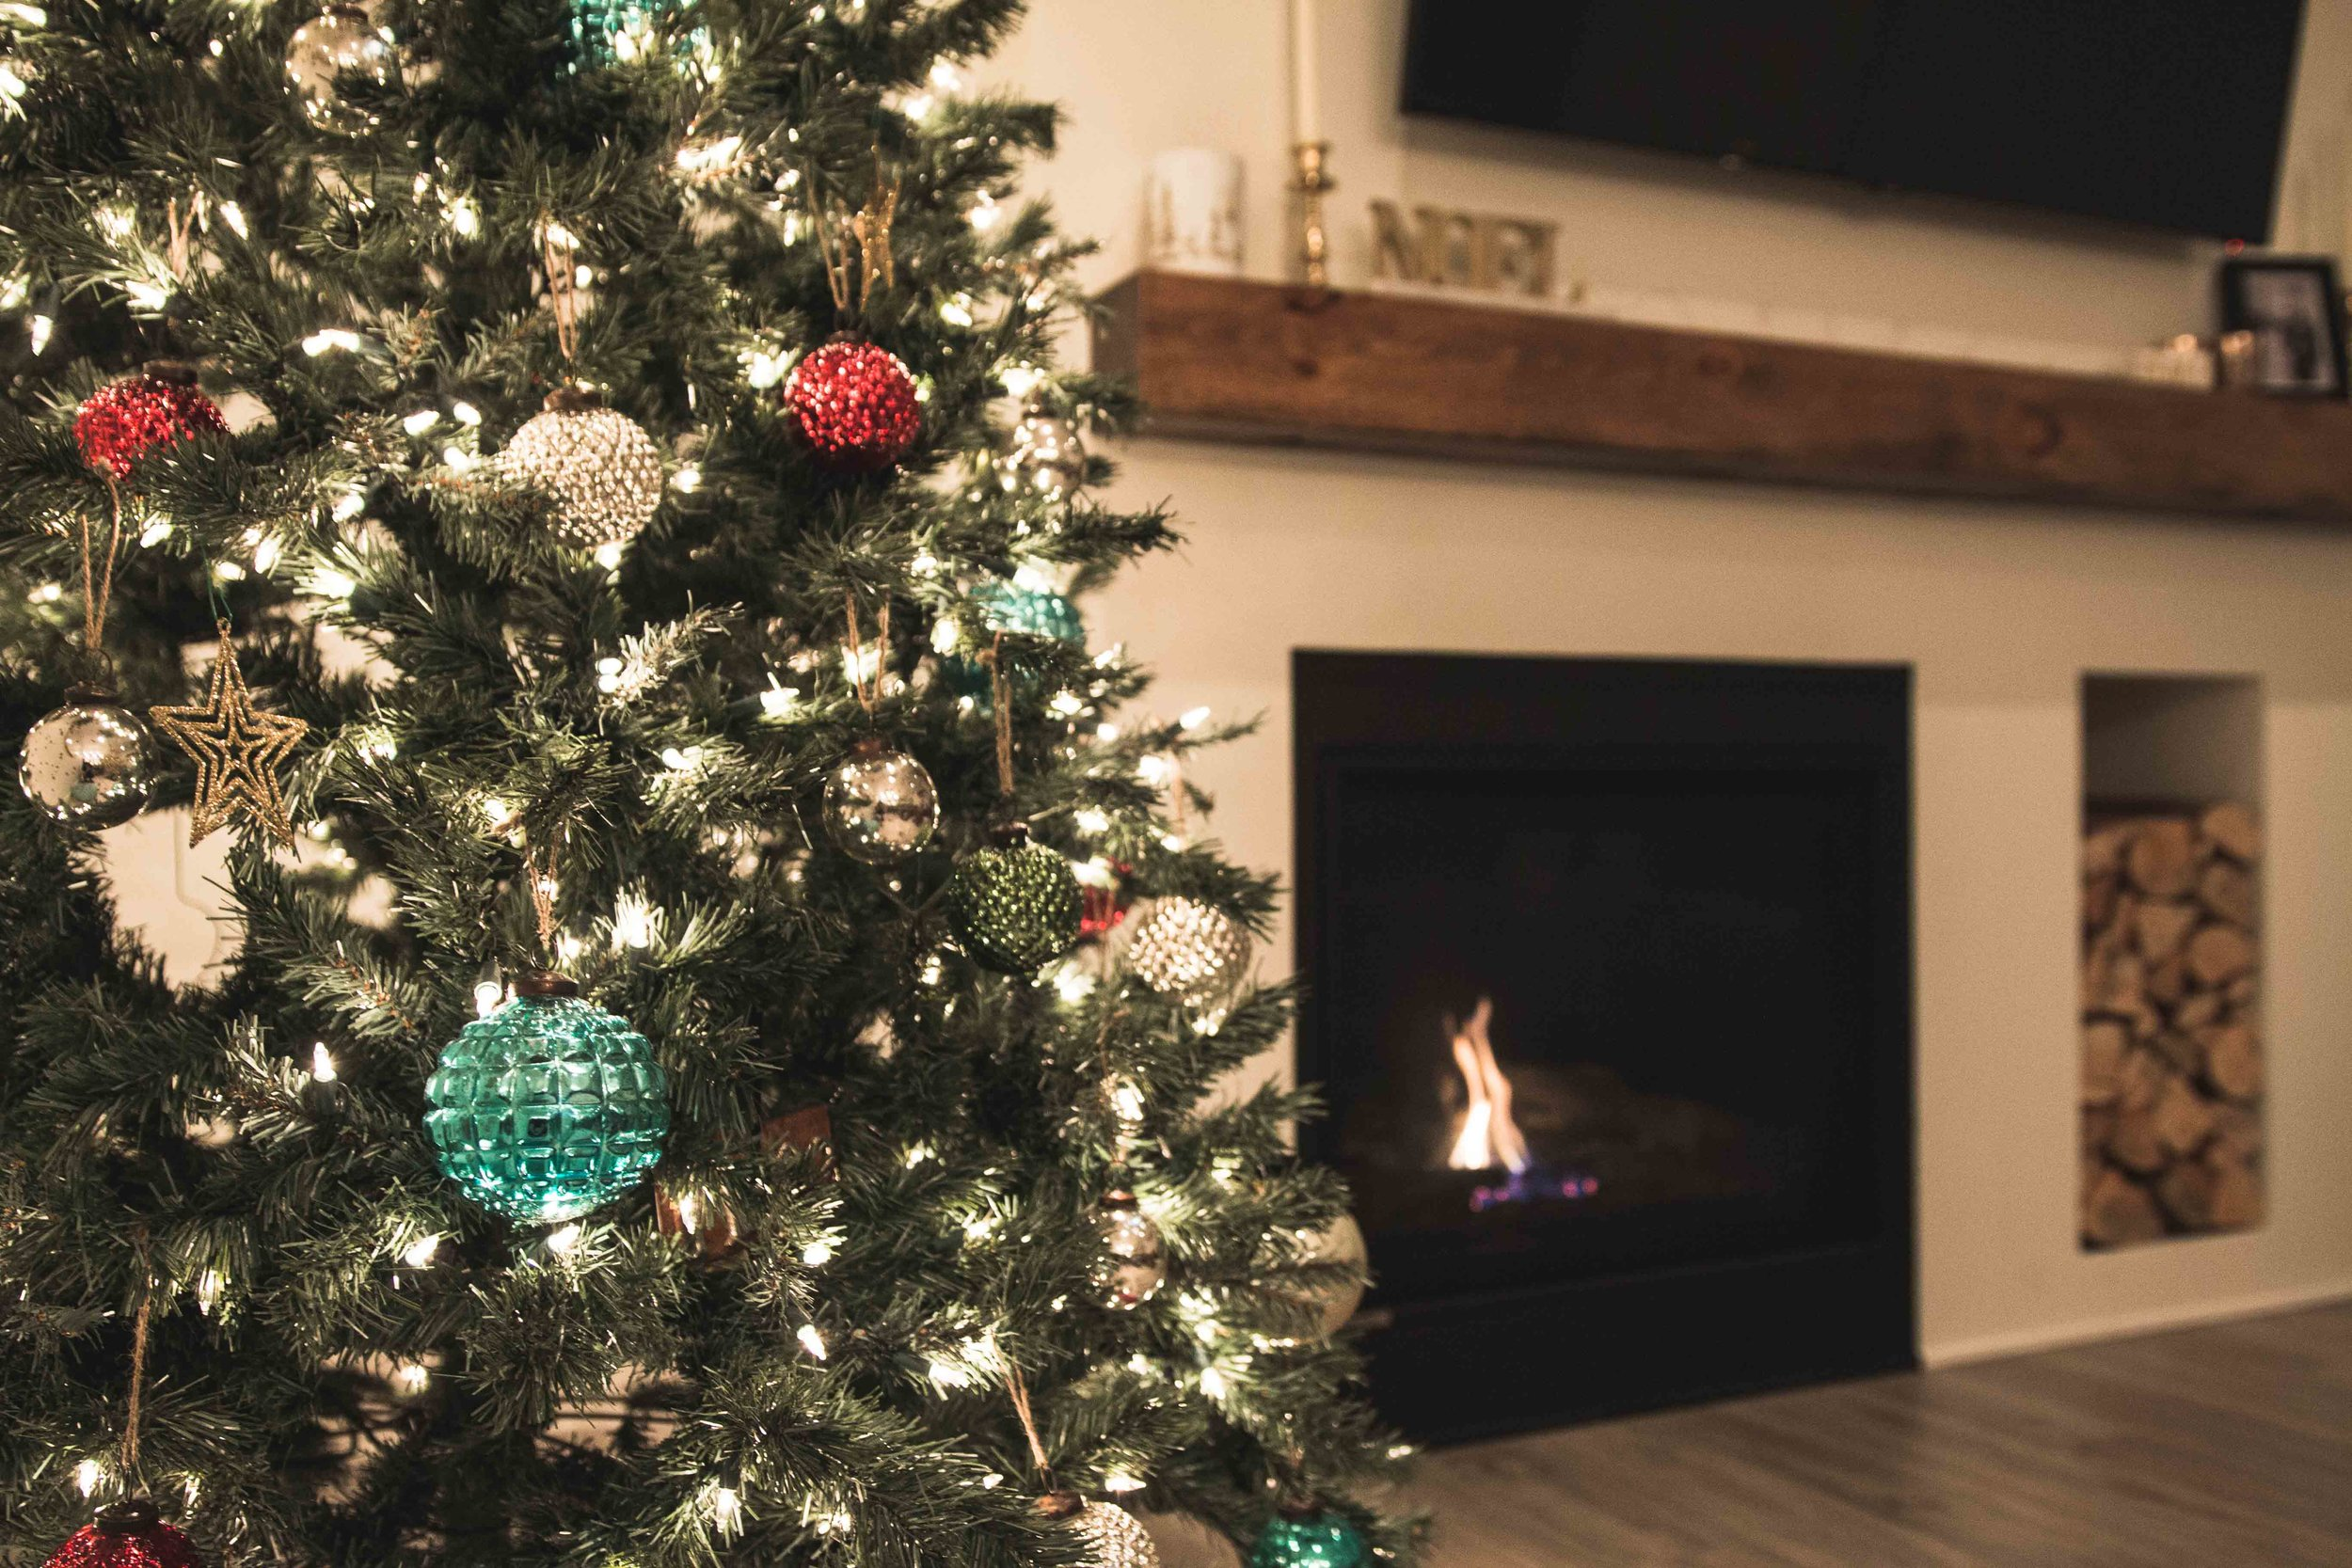 One Time Christmas Cleaning Well Being Home Cleaning House Cleaning Services In Regina Saskatchewan